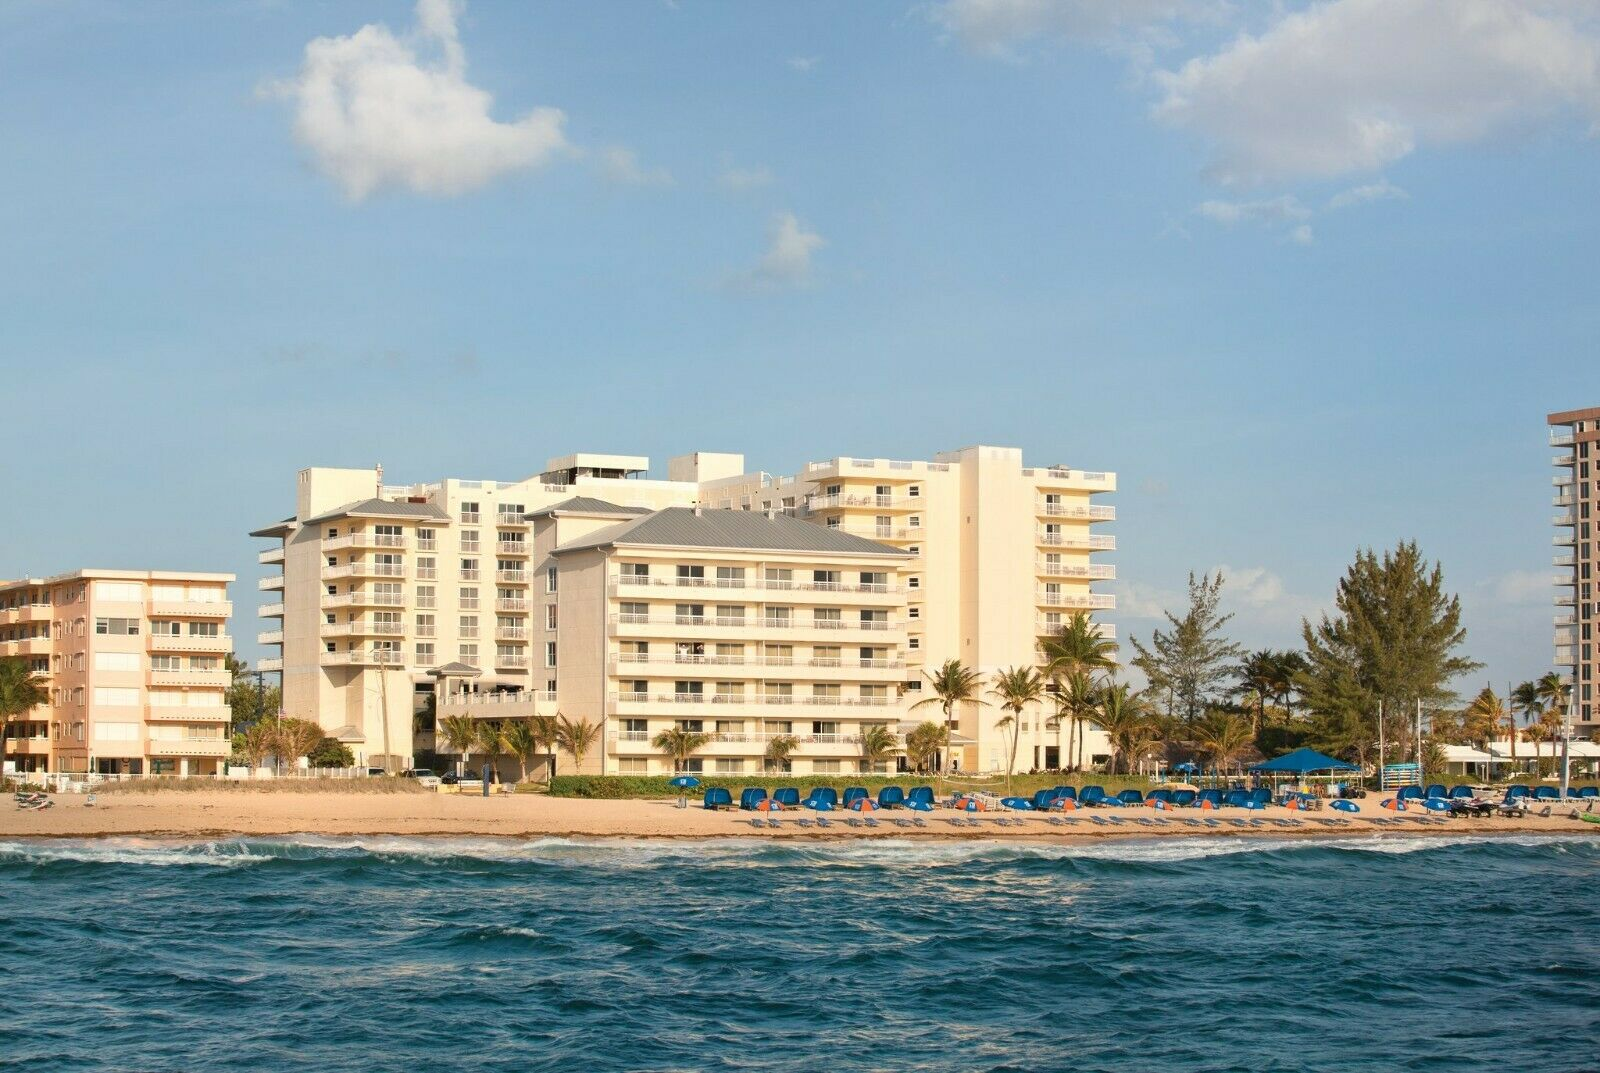 WYNDHAM ROYAL VISTA 154,000 ANNUAL POINTS 2021 USAGE AVAILABLE - $250.00